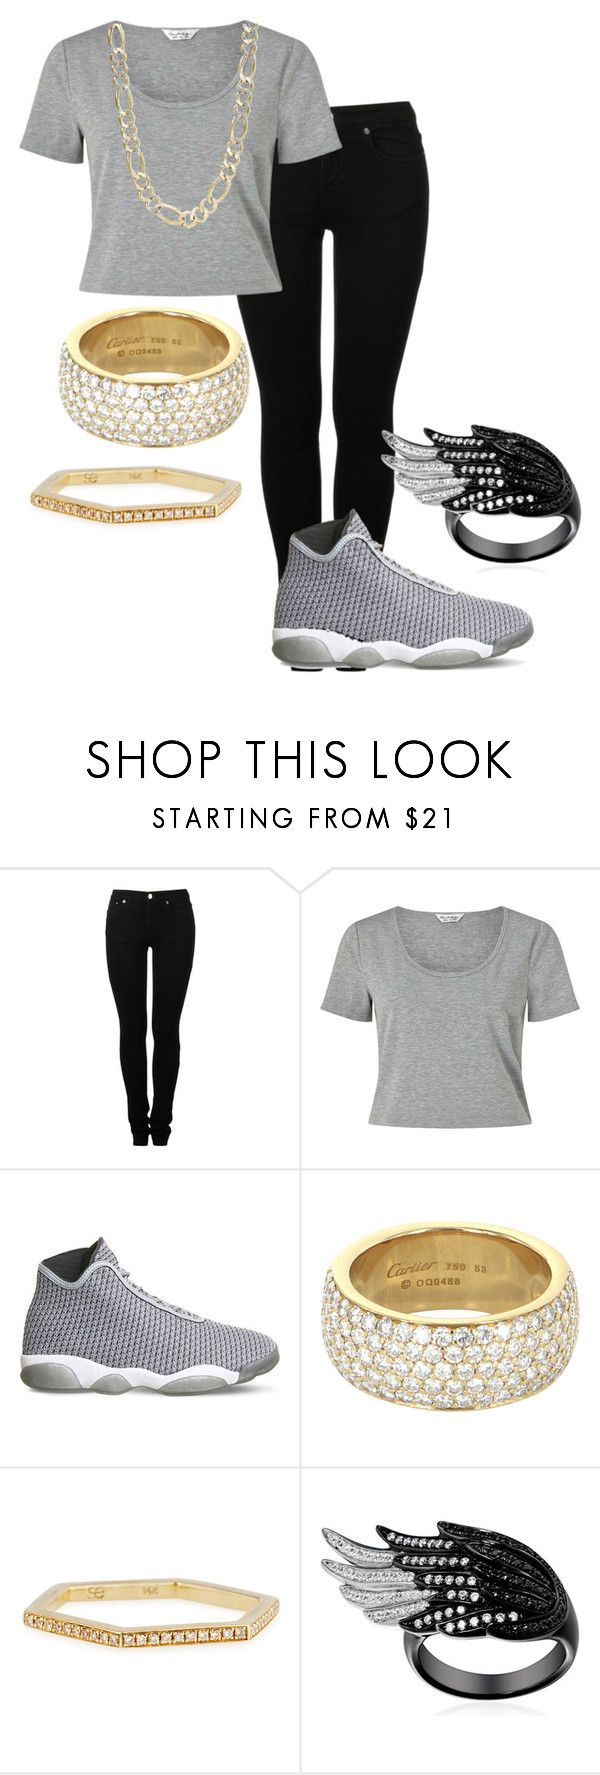 """Cute Swag Outfits"" by jaliyahk on Polyvore featuring MM6 Maison Margiela, Miss Selfridge, NIKE, Cartier and Sydney Evan"